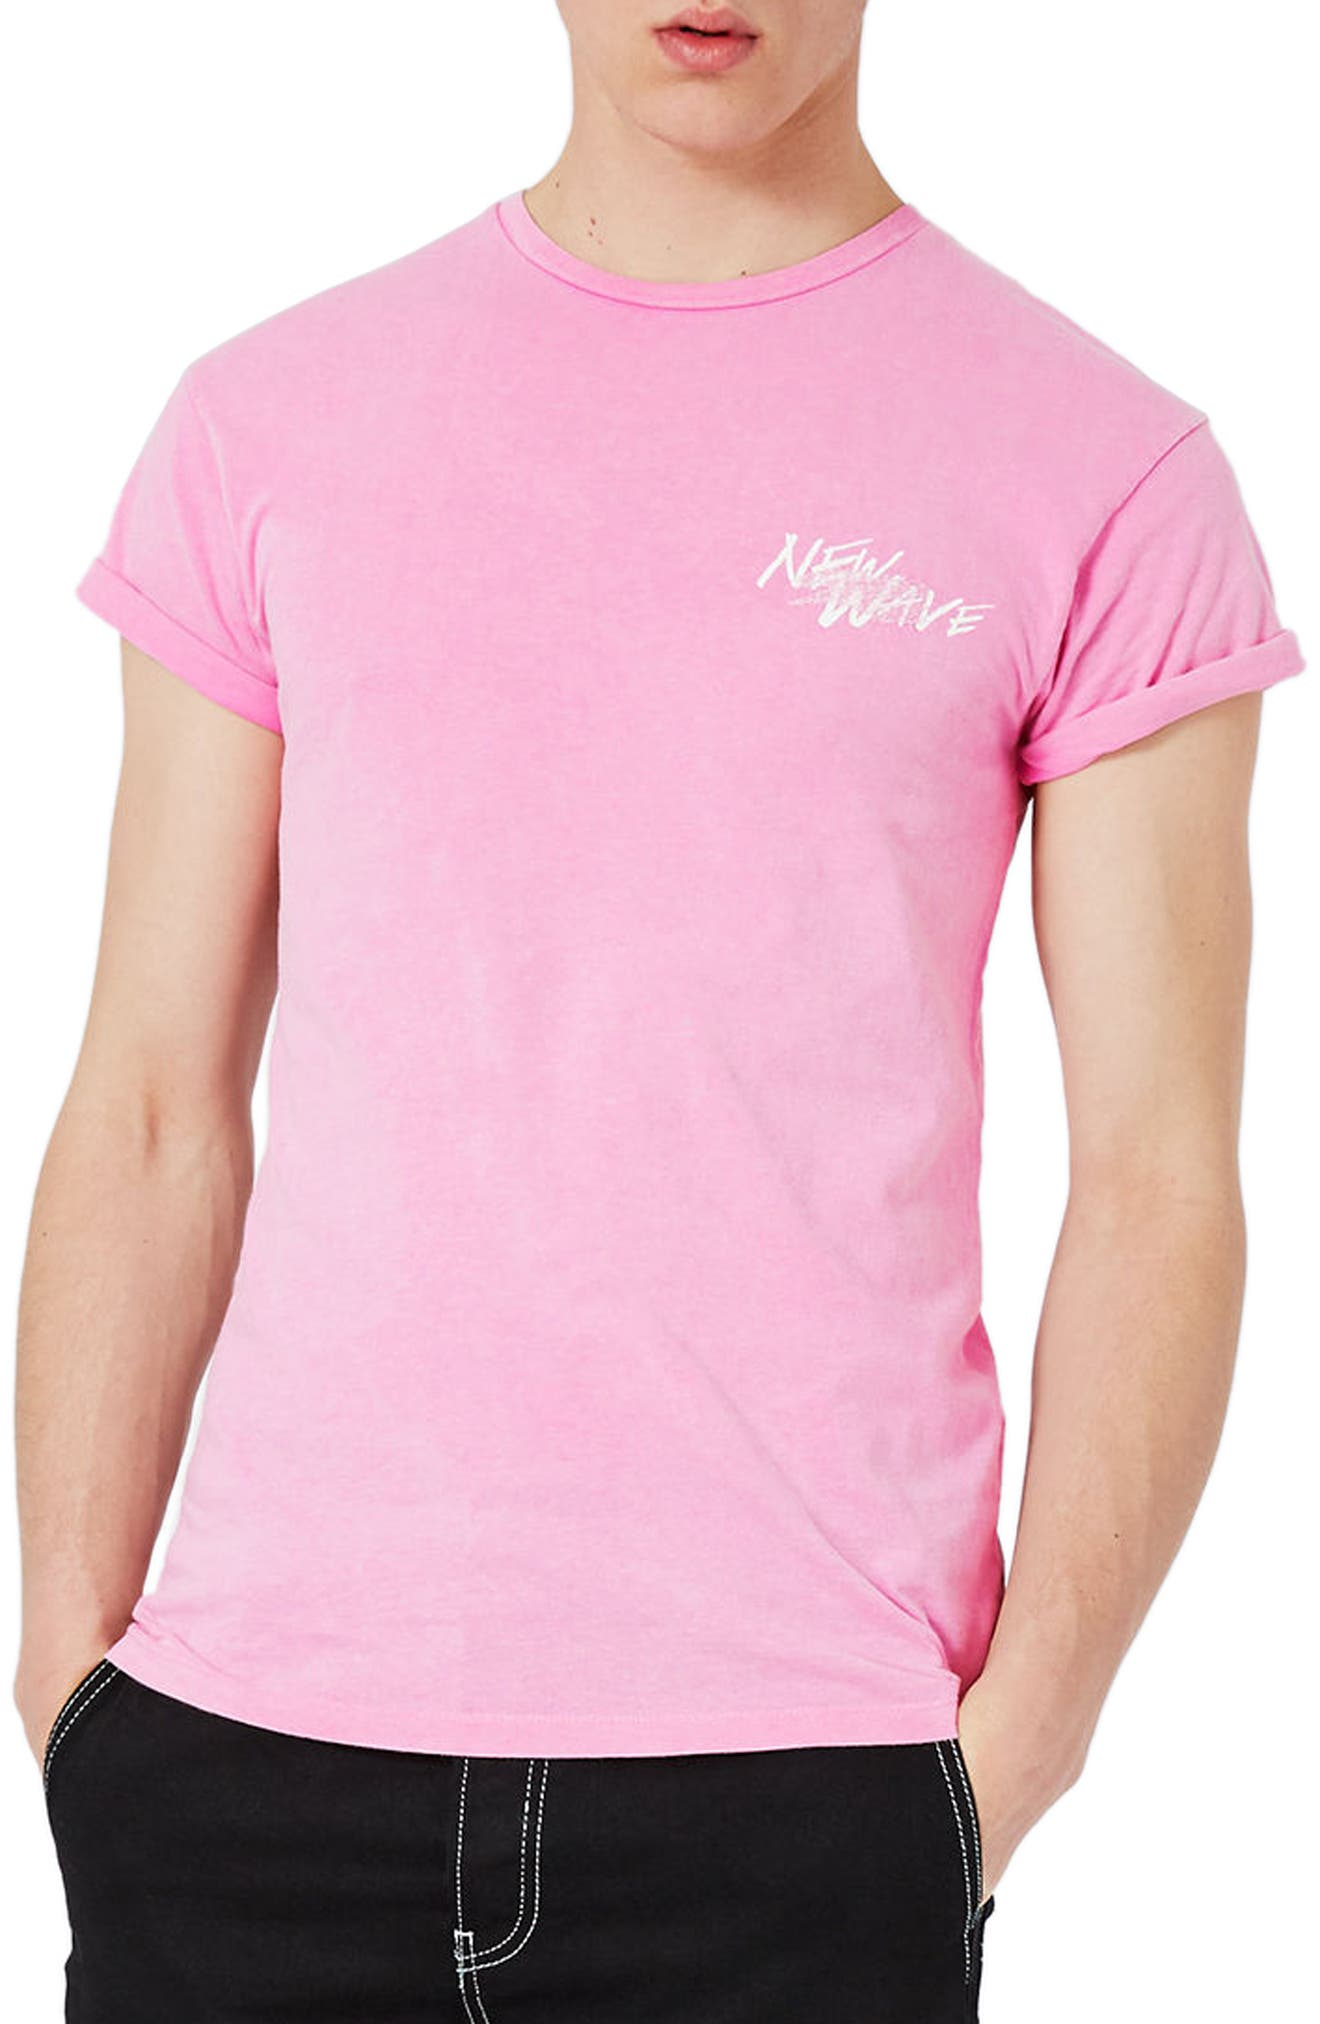 Topman Muscle Fit Embroidered New Wave T-Shirt